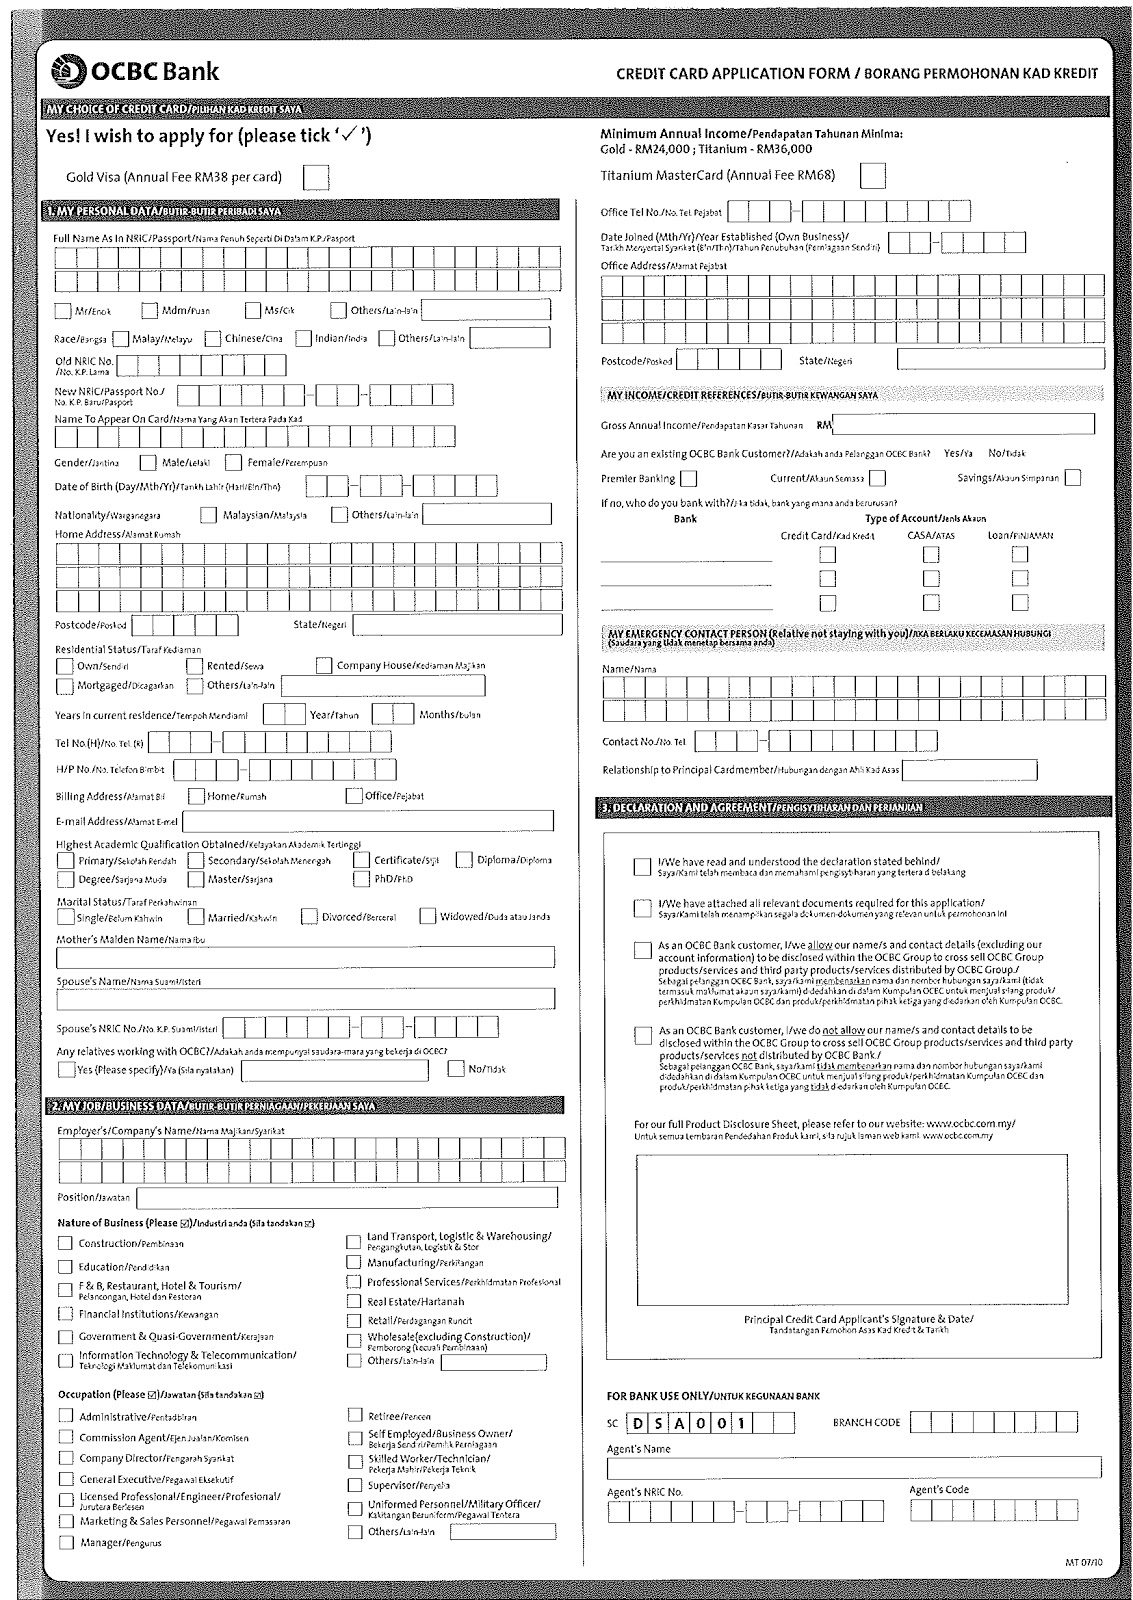 anium+Application+Form_Aug2010 Ocbc Application Form Credit Card on apply visa, for joint, template for writing business,